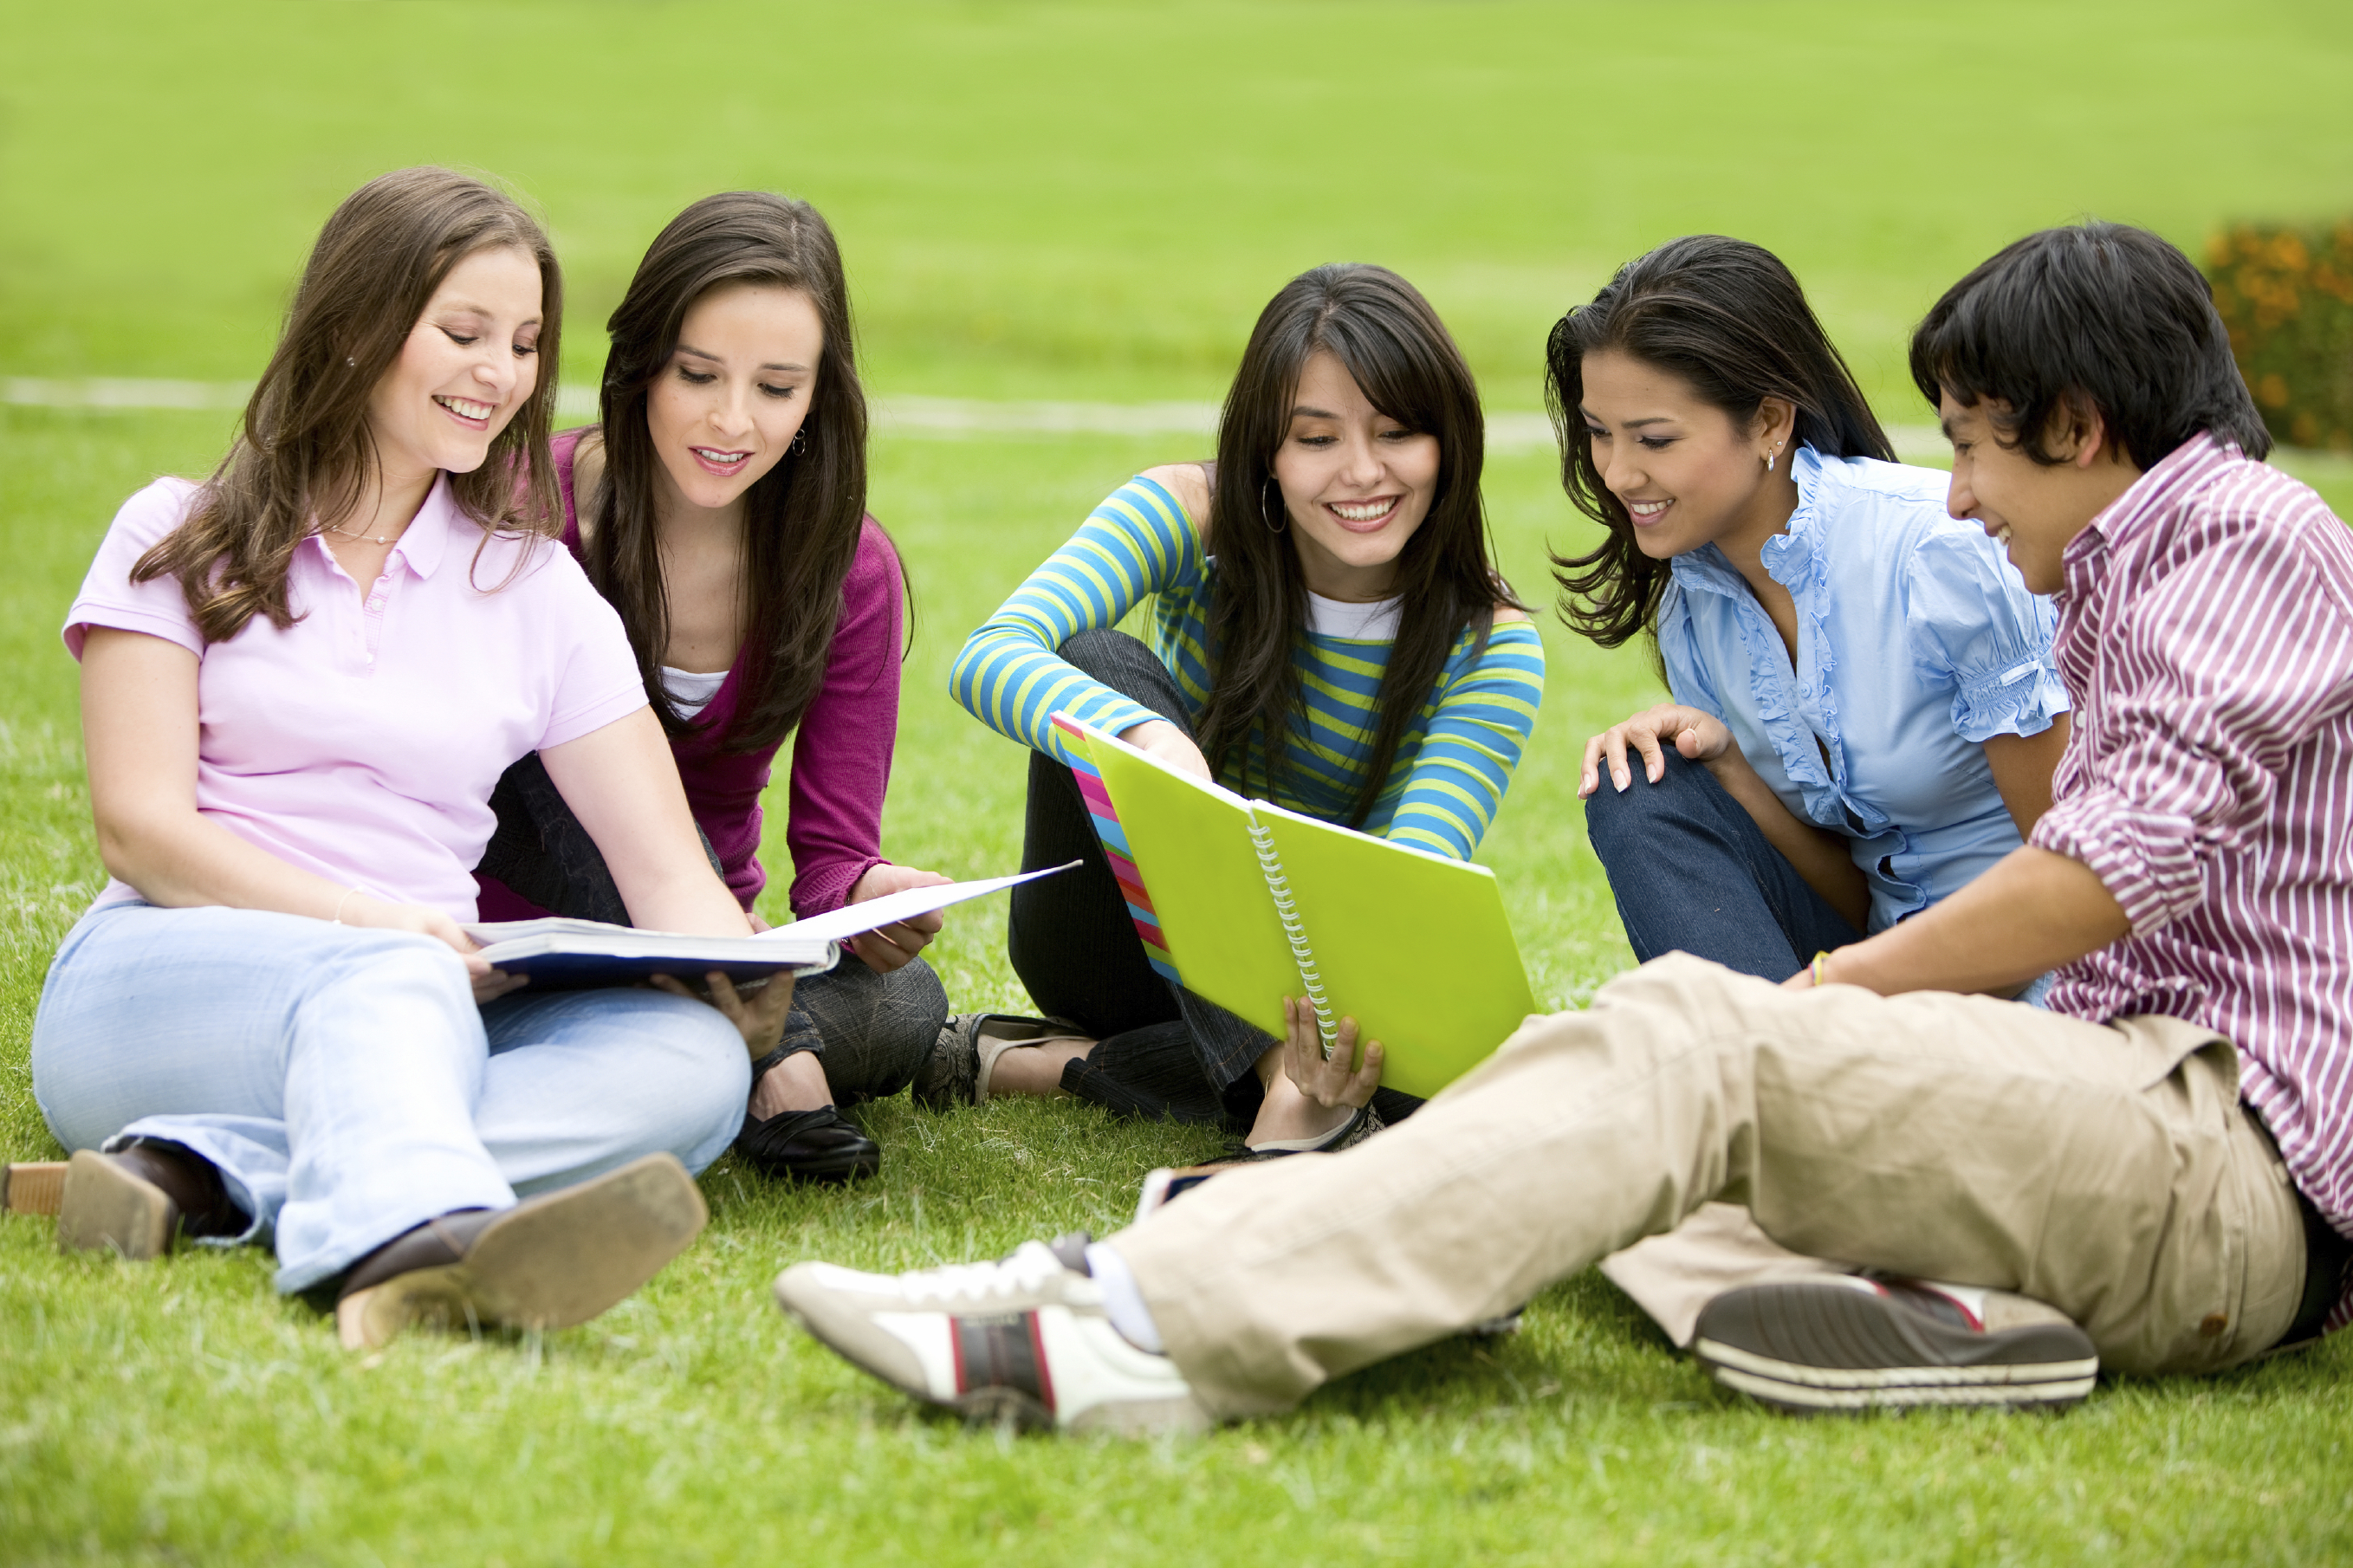 college study groups - 900×600